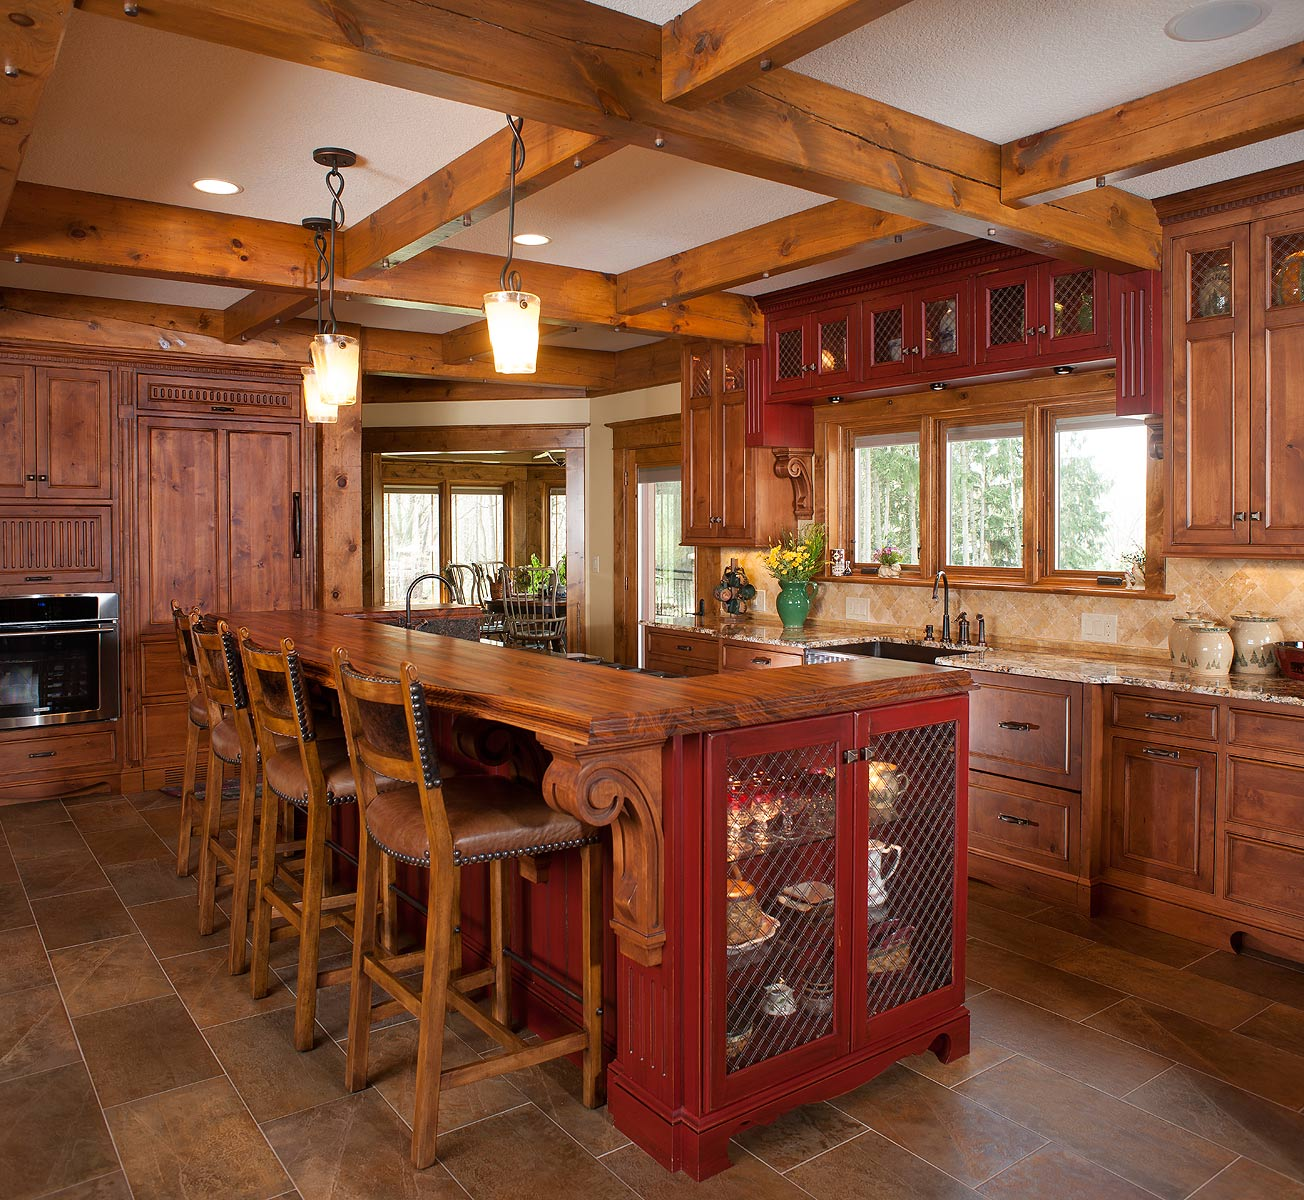 Knotted Oak Kitchen Cabinets: Rustic Kitchen Retreat